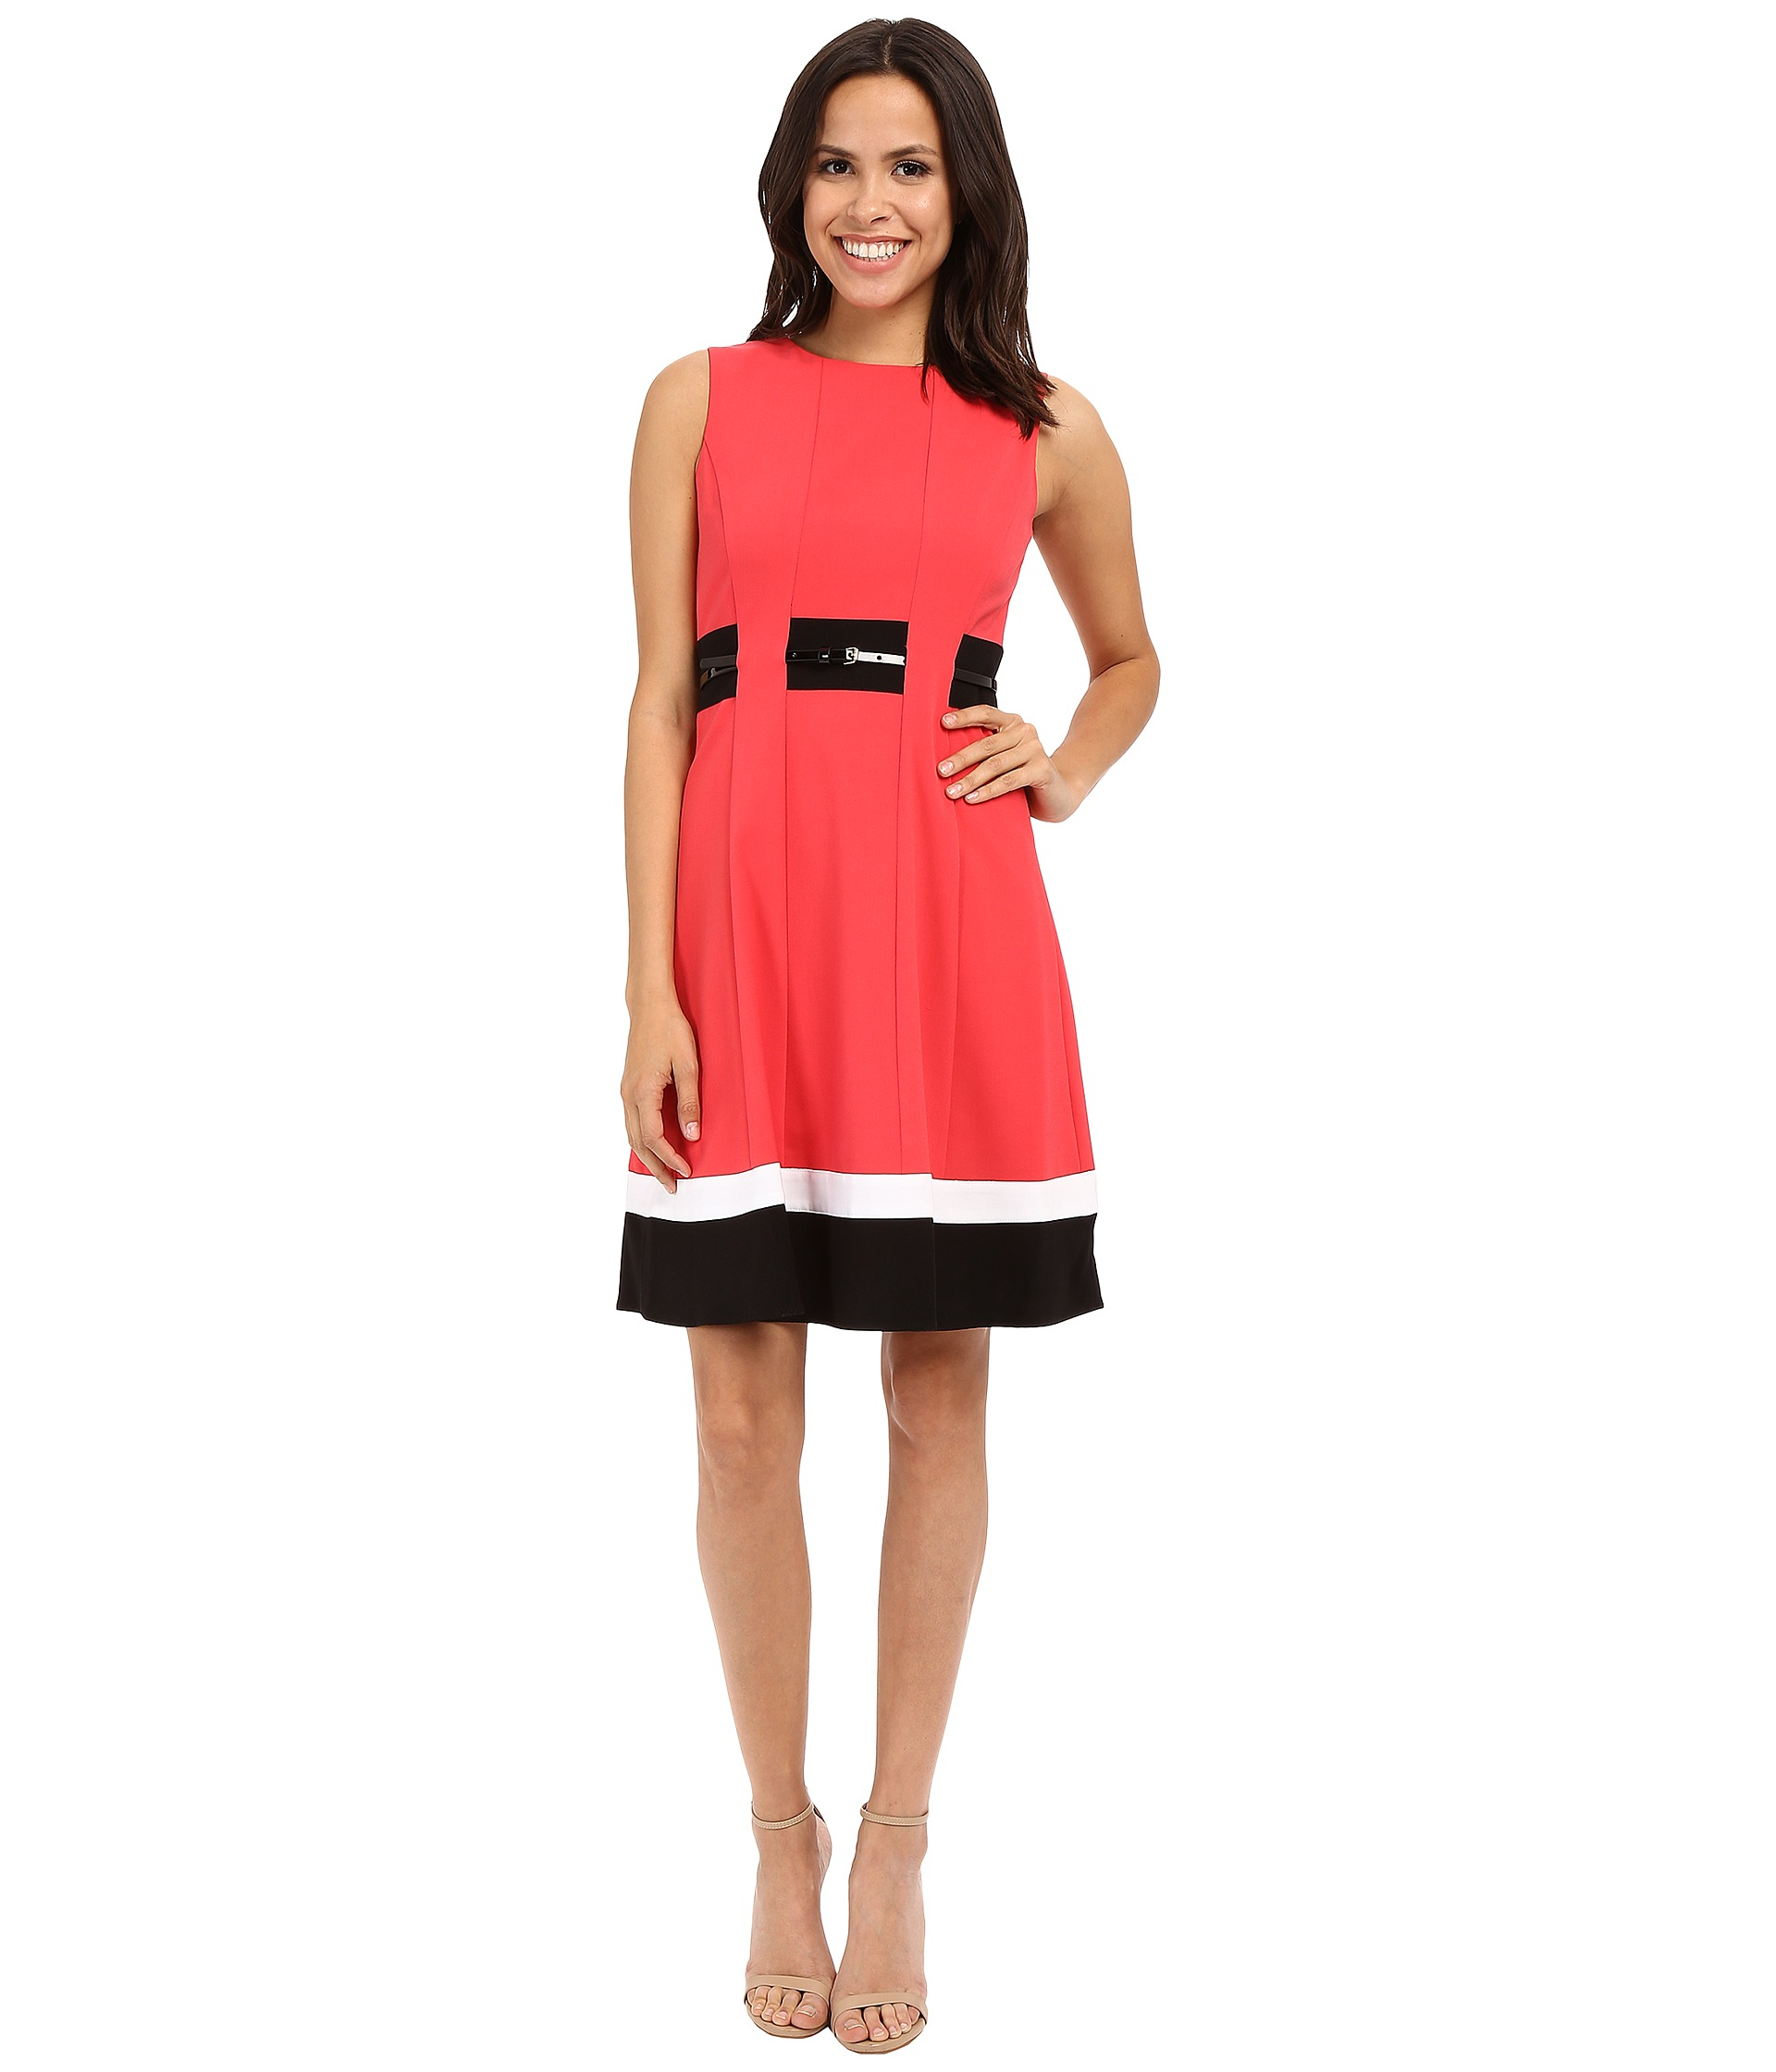 d94ee0711f7f Lyst - Calvin Klein Color Block Fit   Flare Dress Cd6x1371 in Black